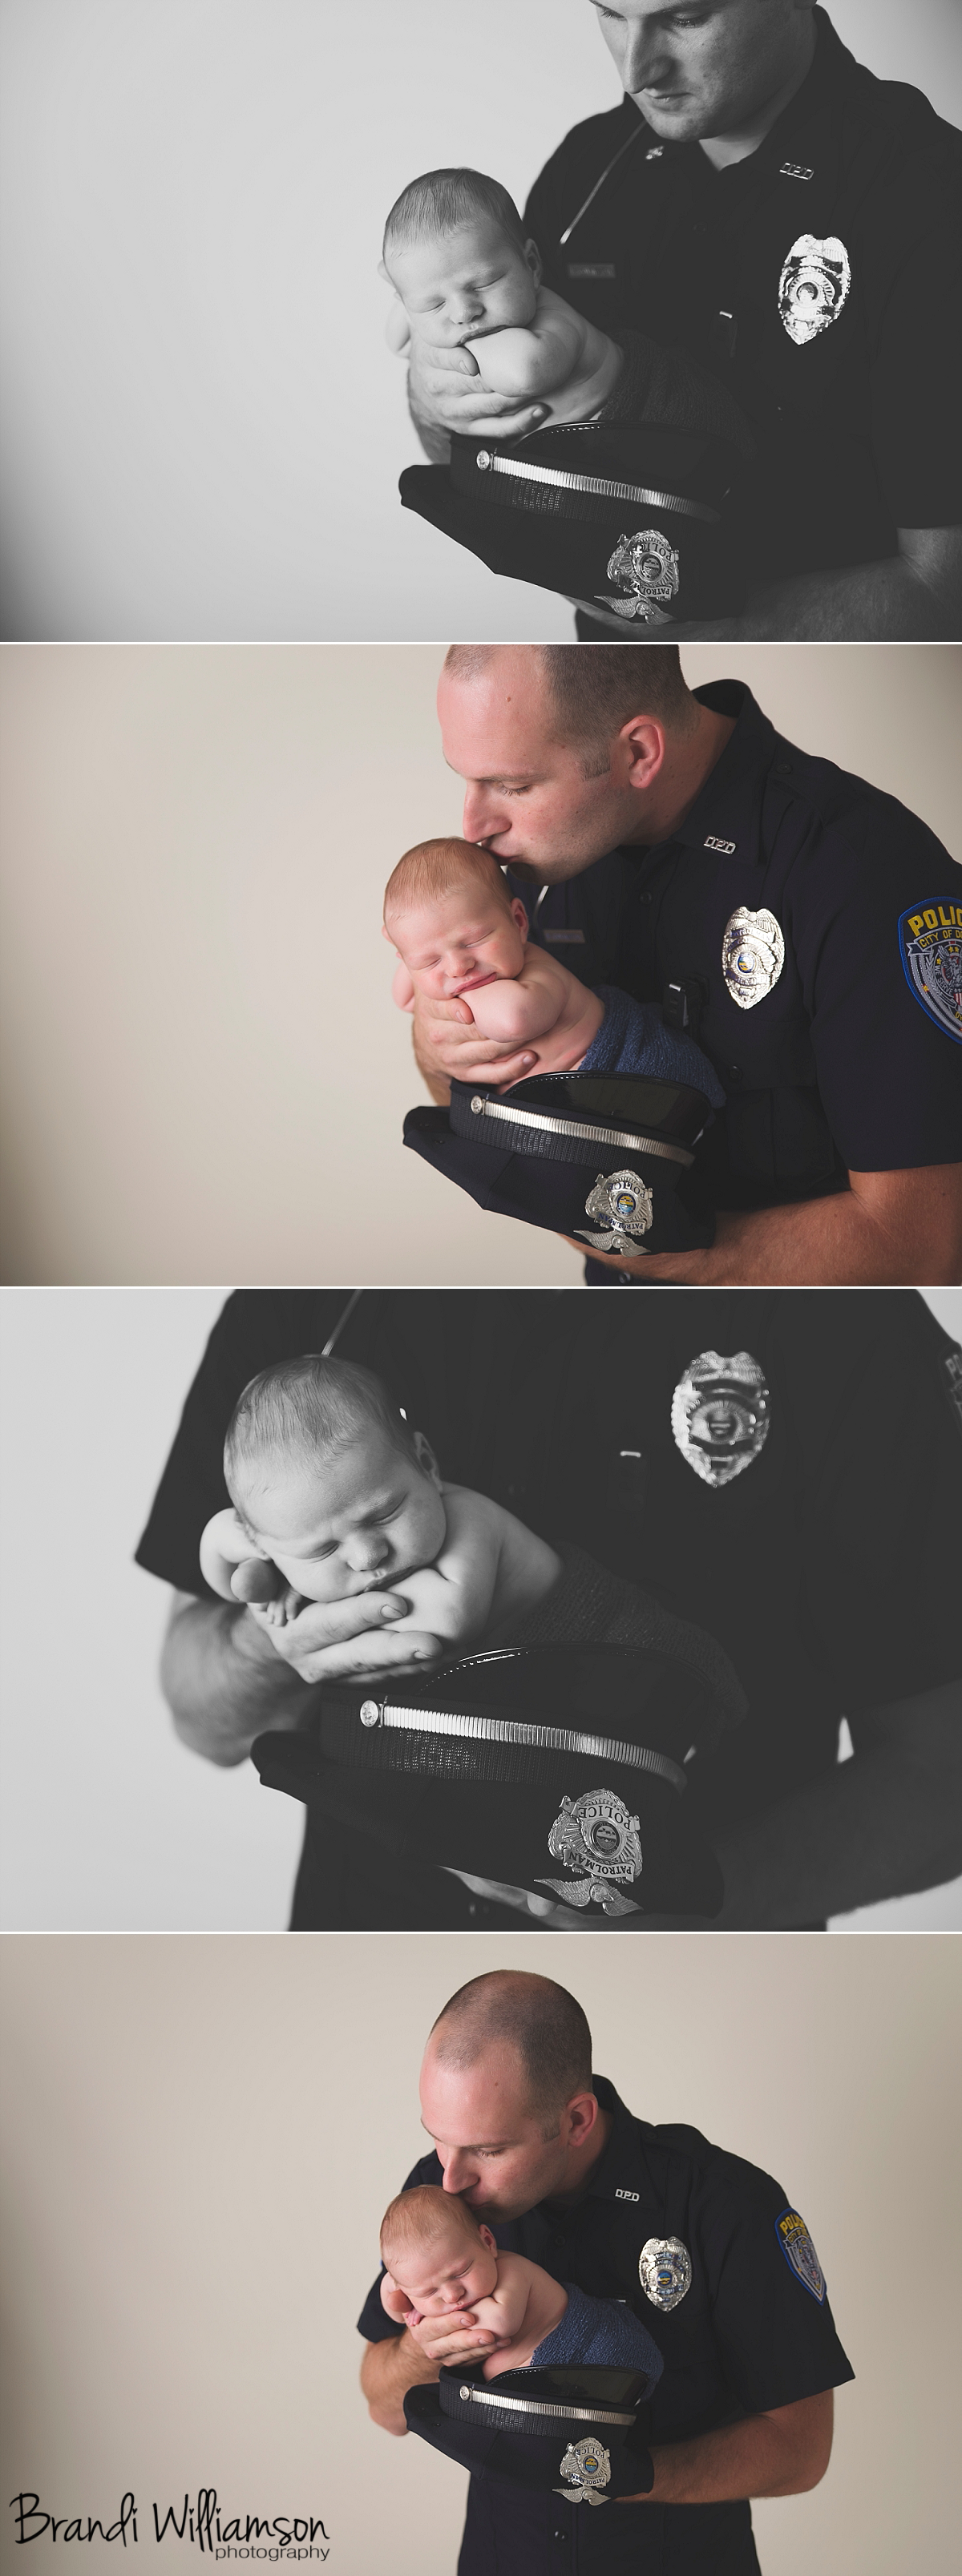 police officer daddy, newborn with police dad, police, clicksoflove, #clicksoflove, clicks of love, officer in uniform, police dad